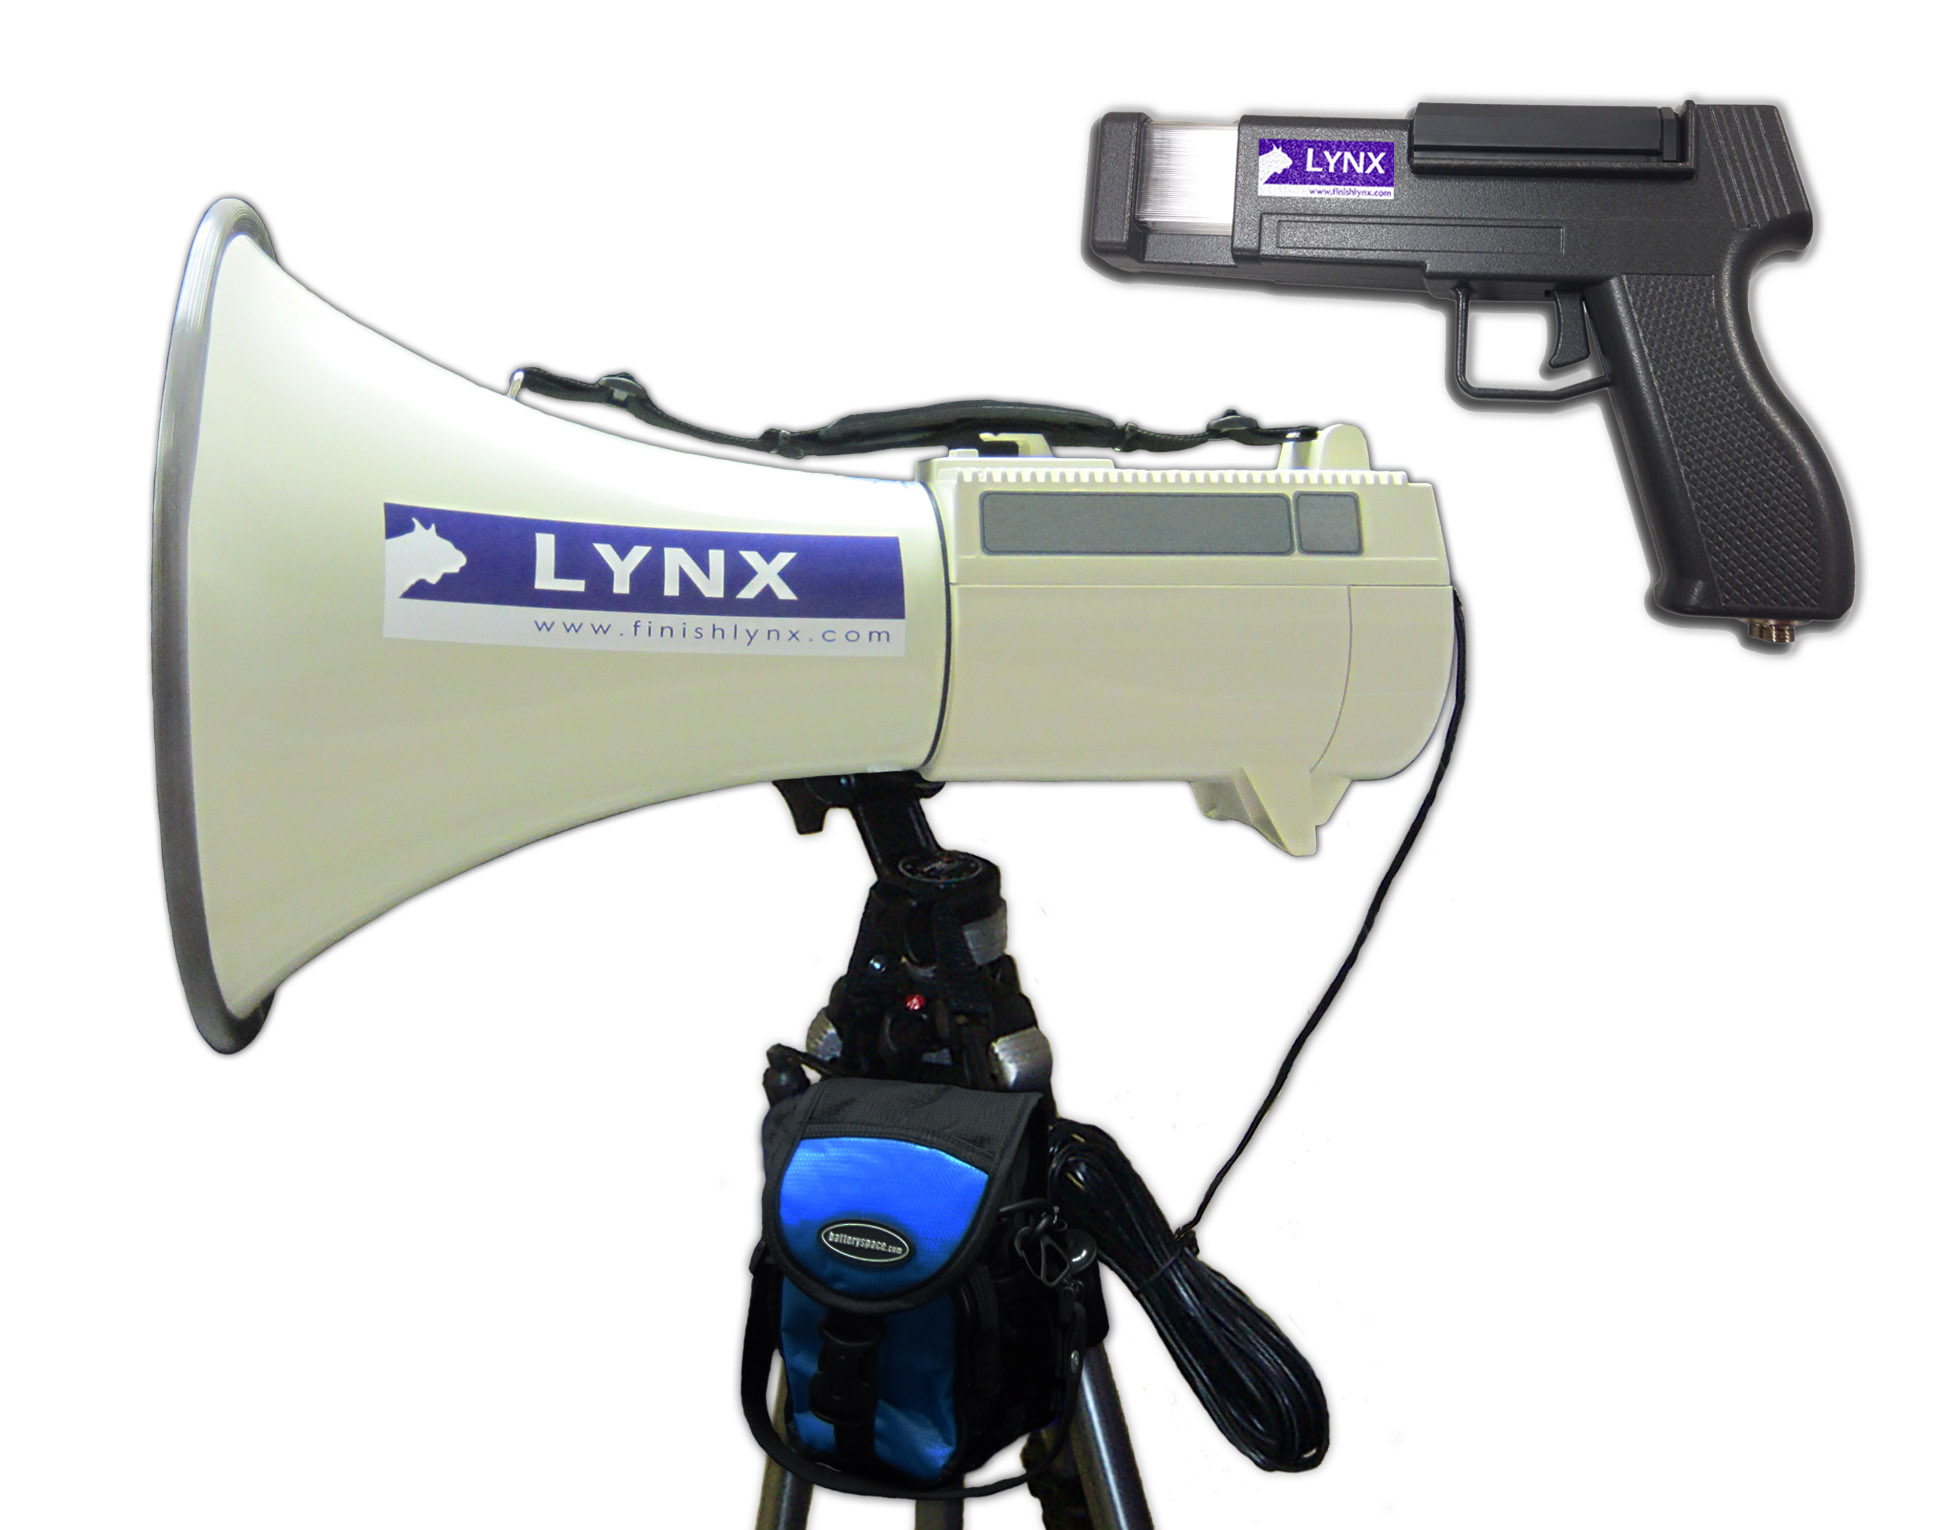 FinishLynx Start System électronique - 3L500